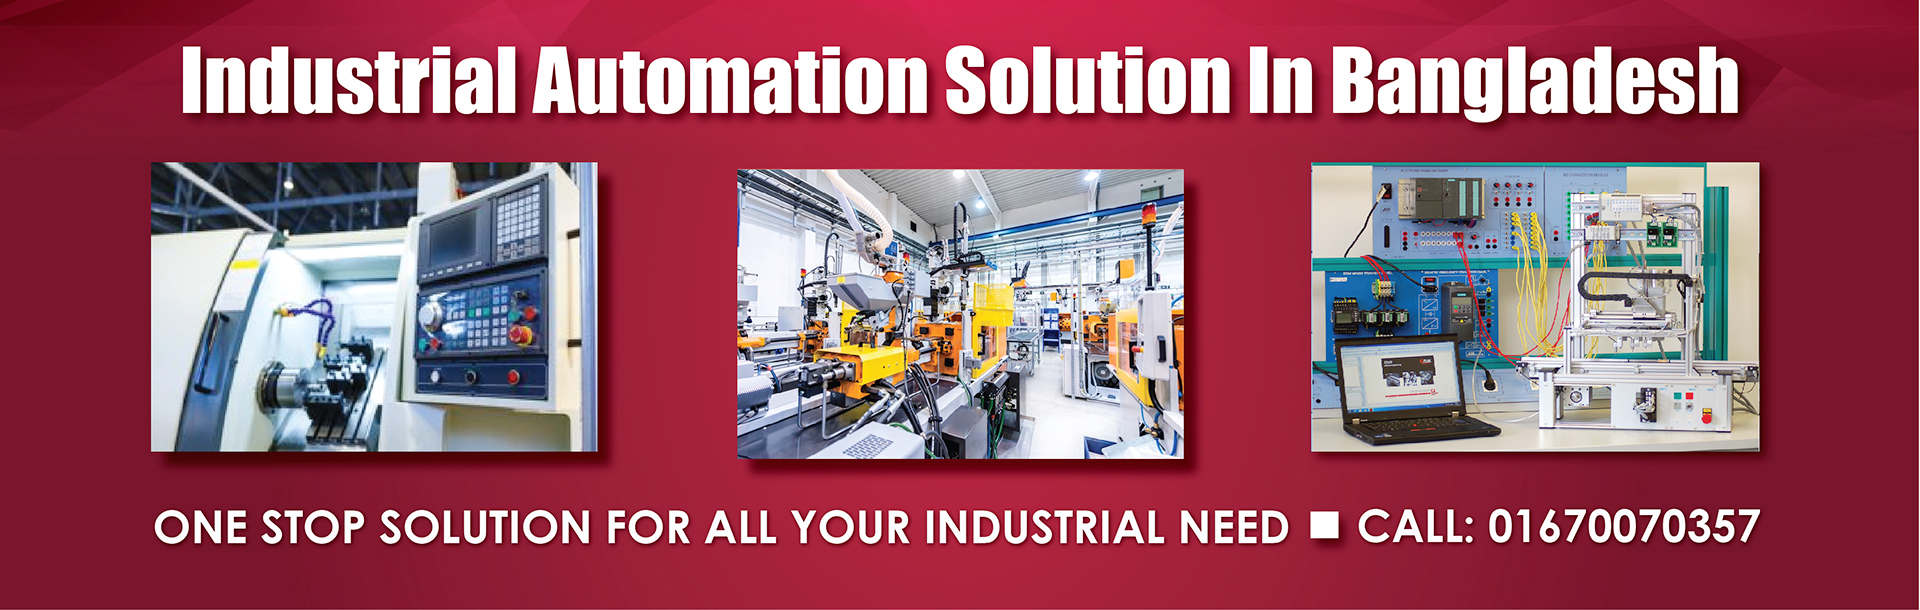 automation solution company in bangladesh